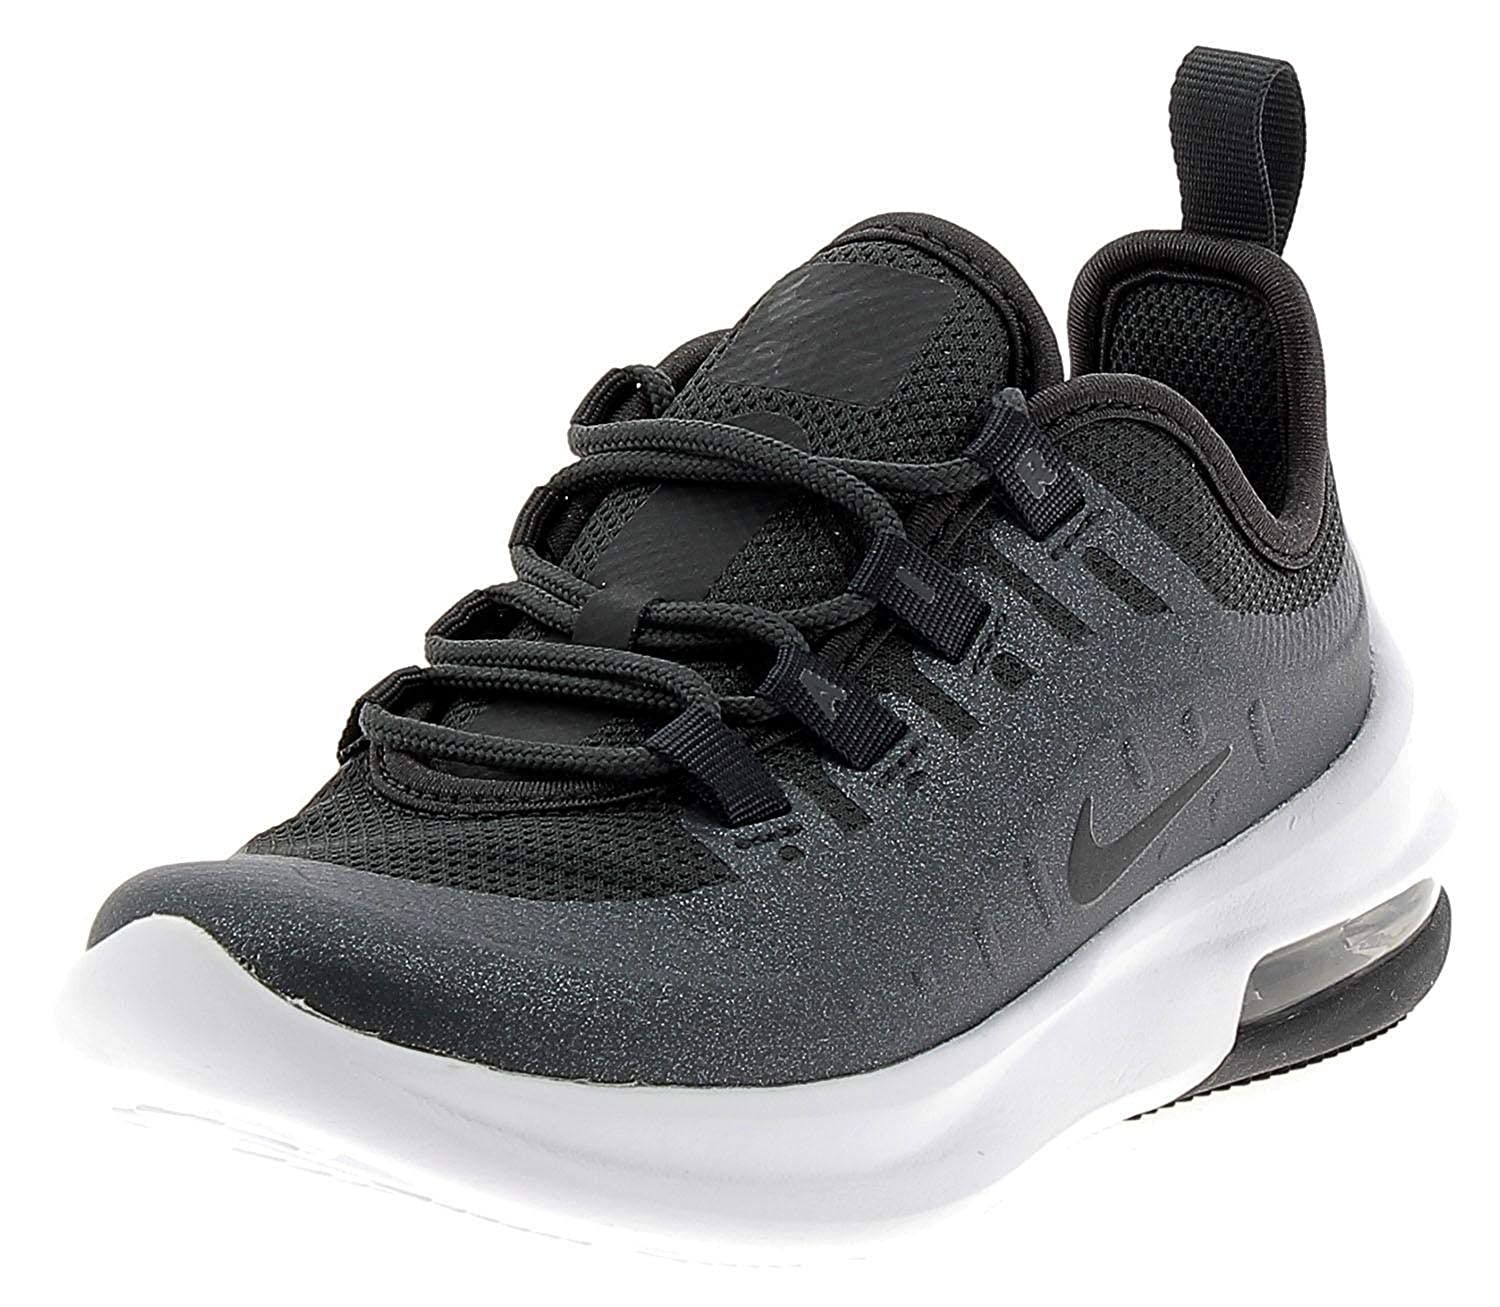 MultiCouleure (Anthracite Anthracite blanc 001) Nike Air Max Axis Se (PS), Chaussures de Fitness Fille 35 EU